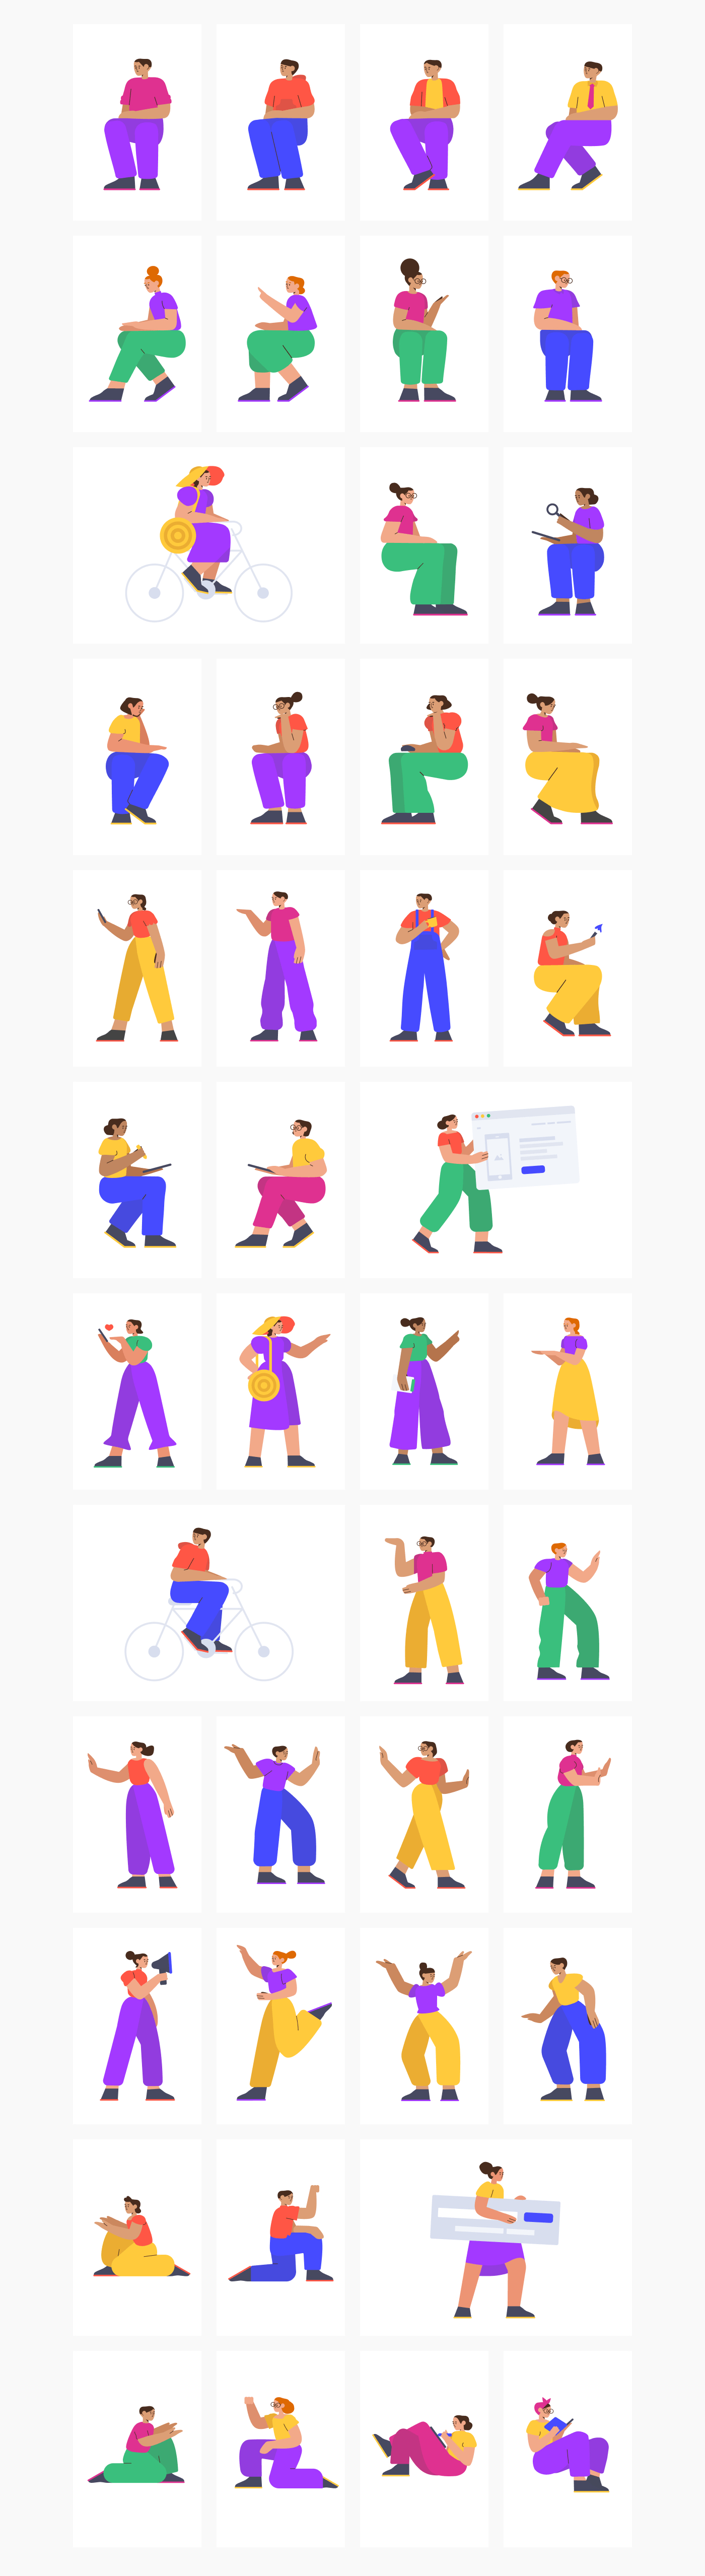 Smash Illustrations - Awesome illustration constructor with colorfuland trendy characters. Create unique illustrations with 45 characters & 200 background objects.